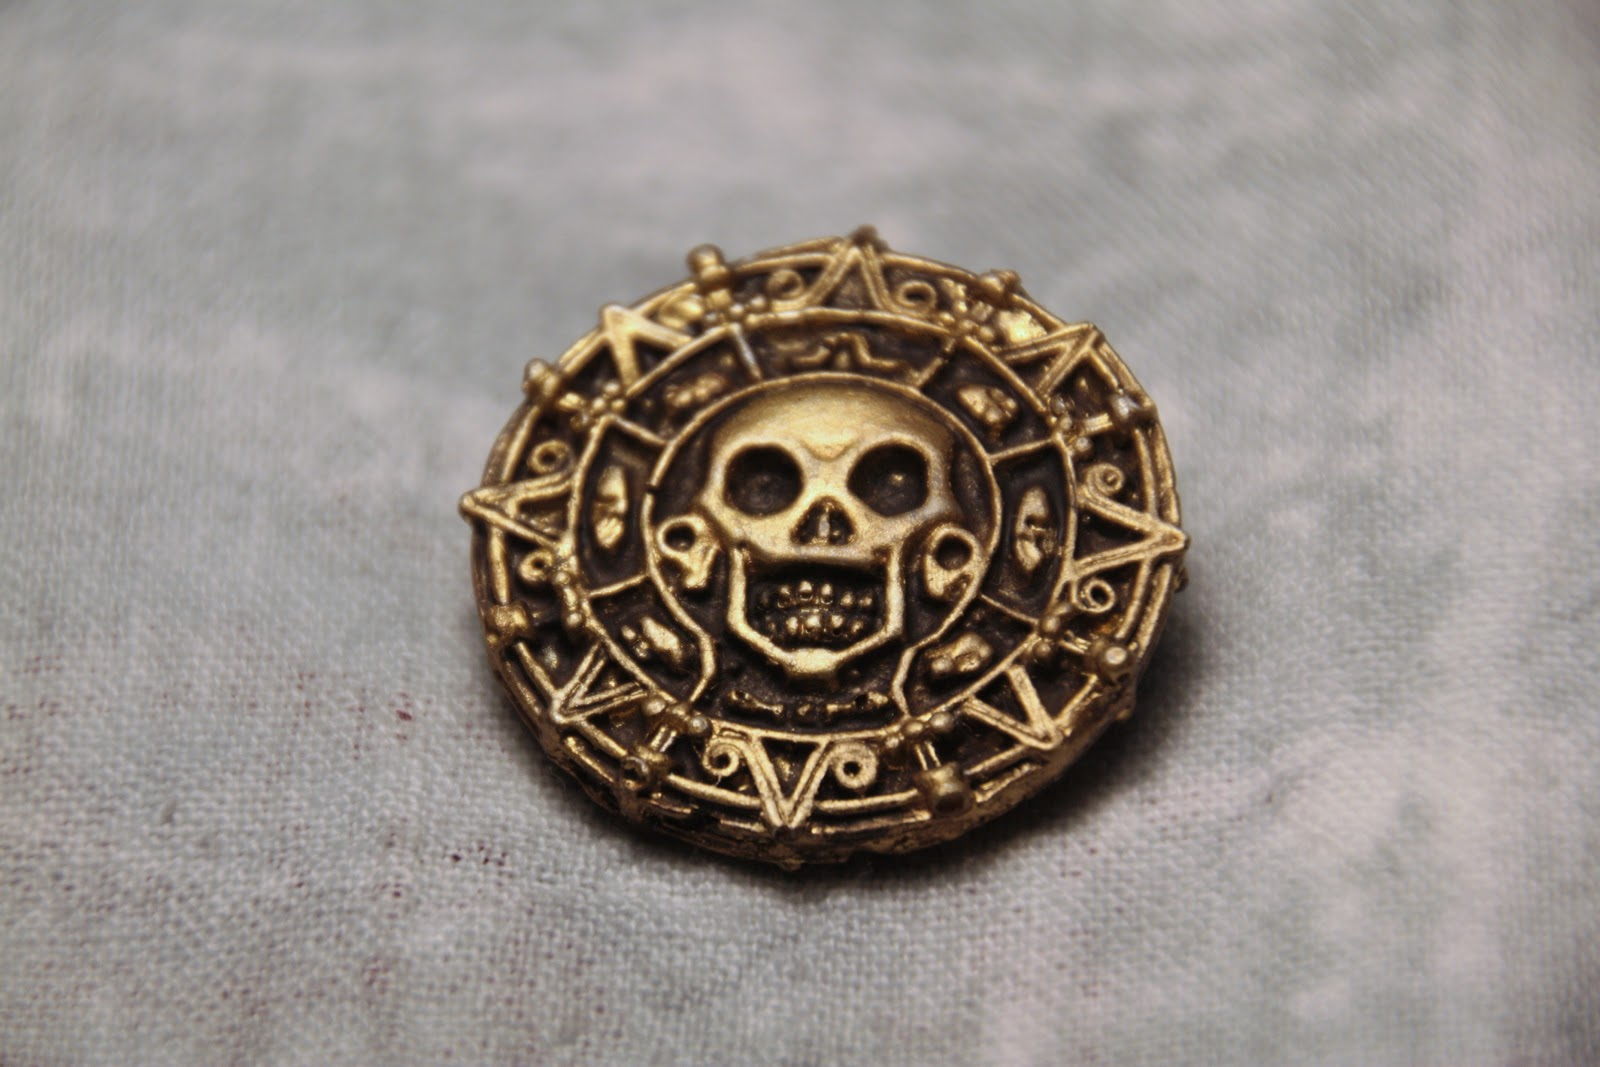 Pirates of the Caribbean: Curse of the Black Pearl prop replica coin